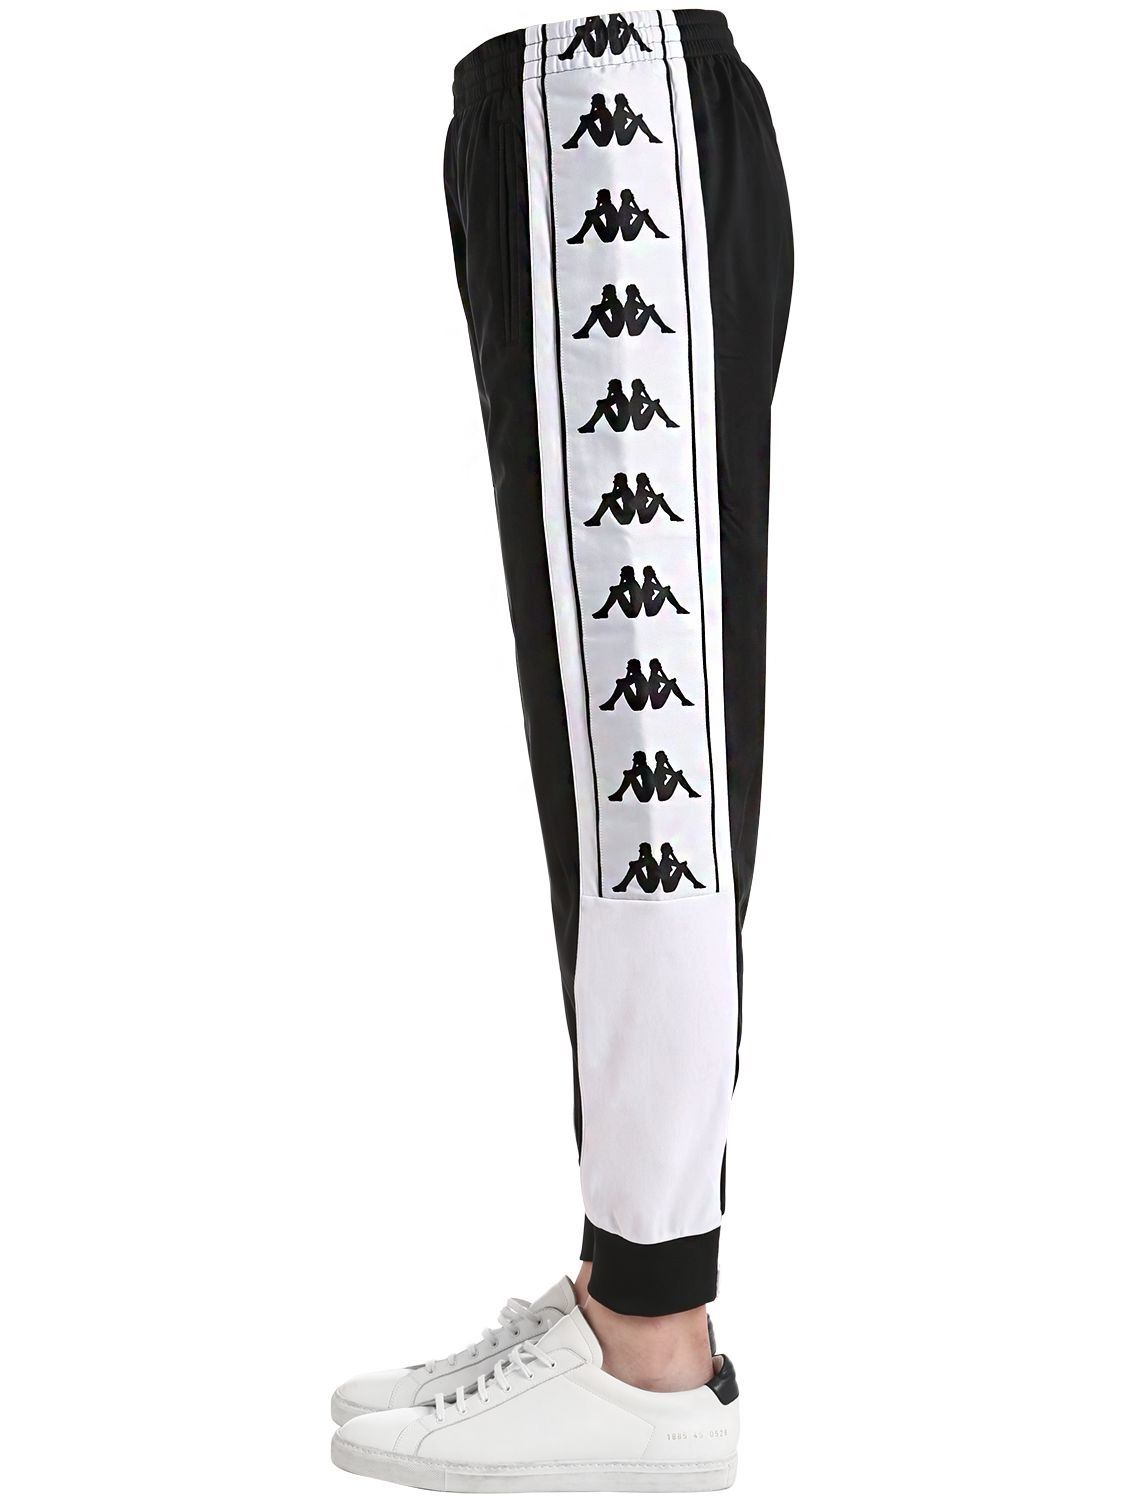 3f17667002 KAPPA TWO TONE LOGO TAPE TRICOT TRACK PANTS. #kappa #cloth # | Kappa ...